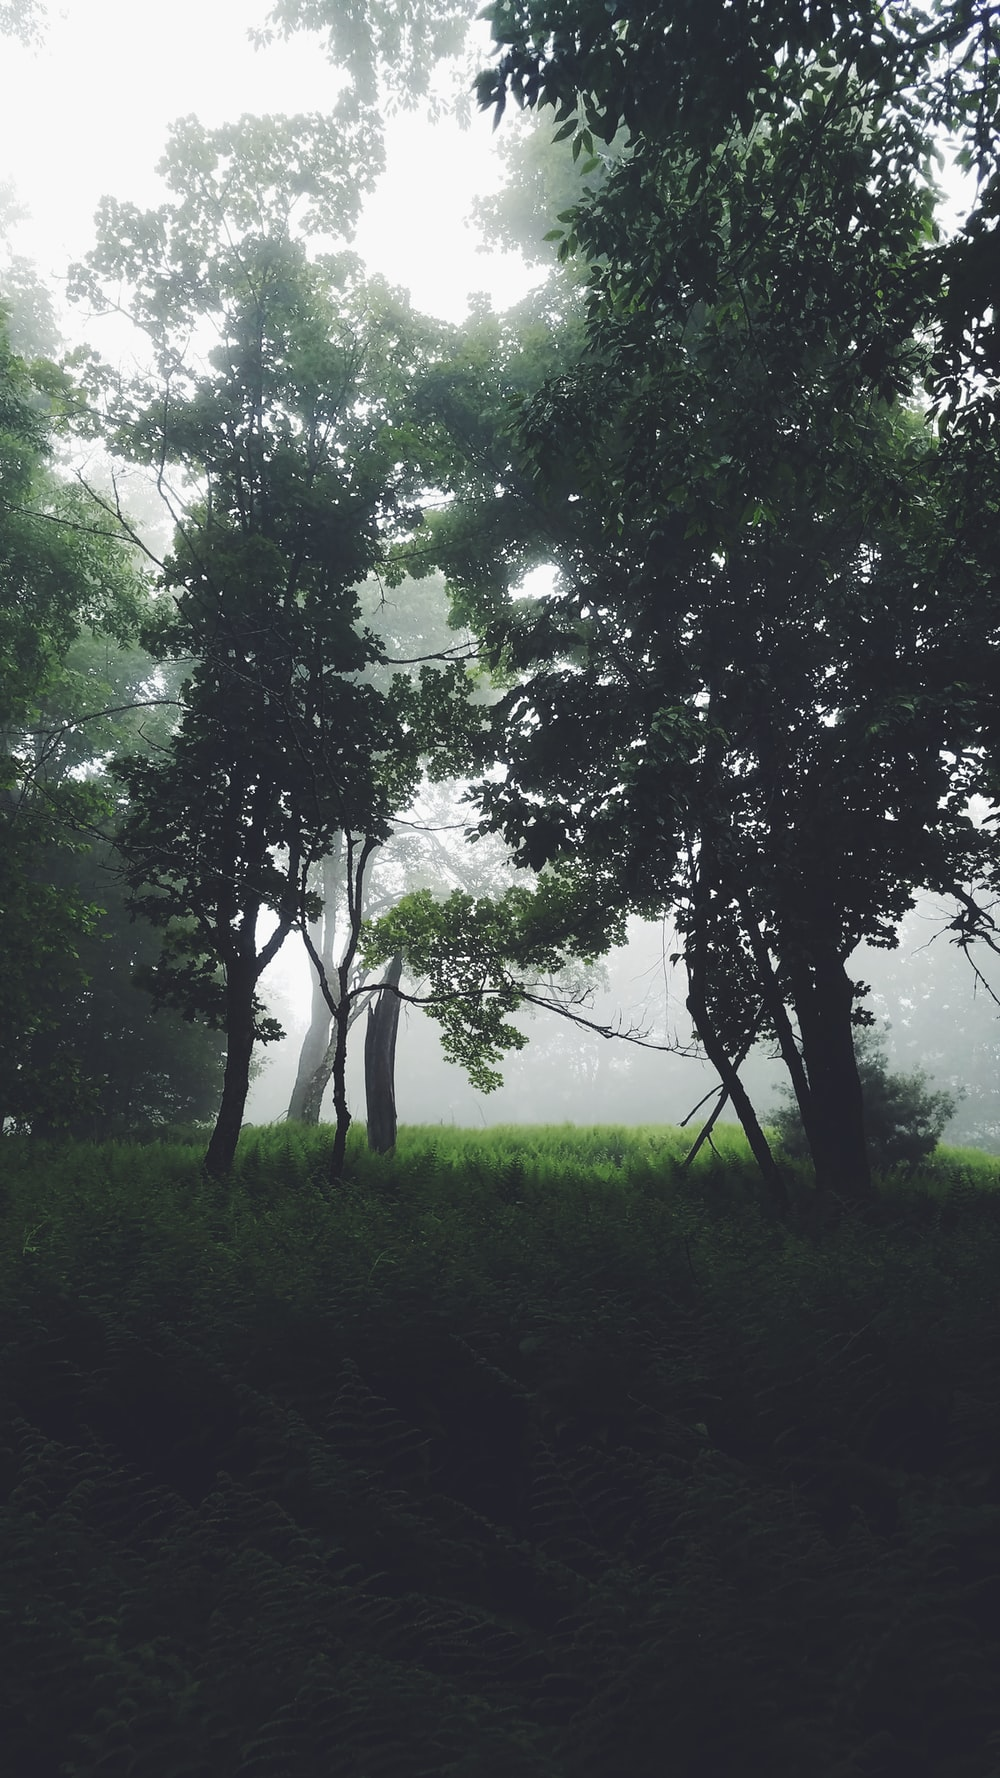 green leafed trees half covered with fogs during daytime photo